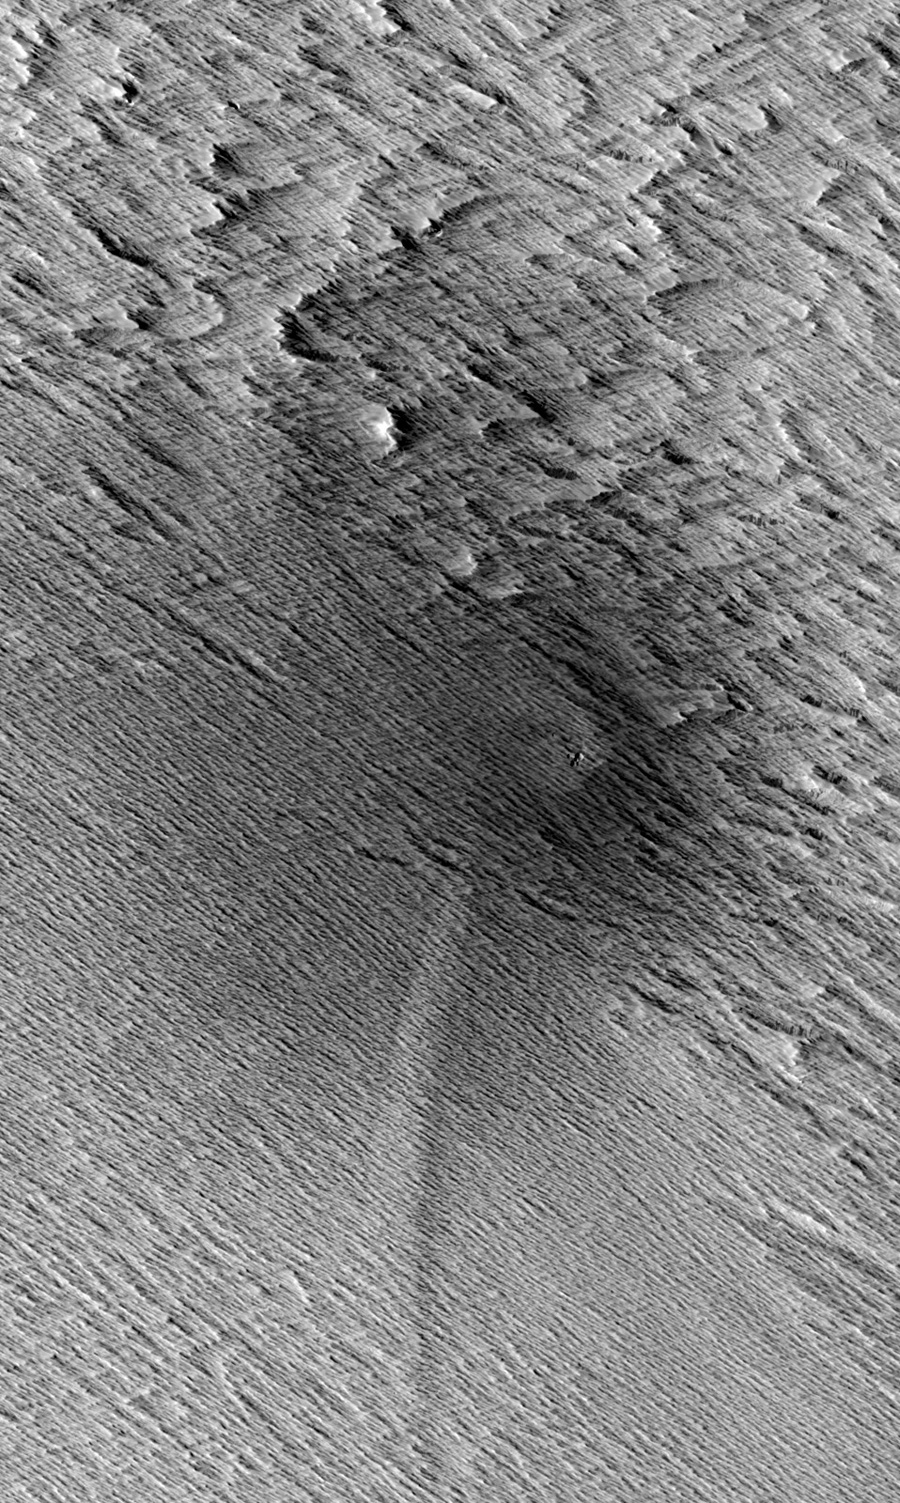 Meteorites Trigger Avalanches on Mars